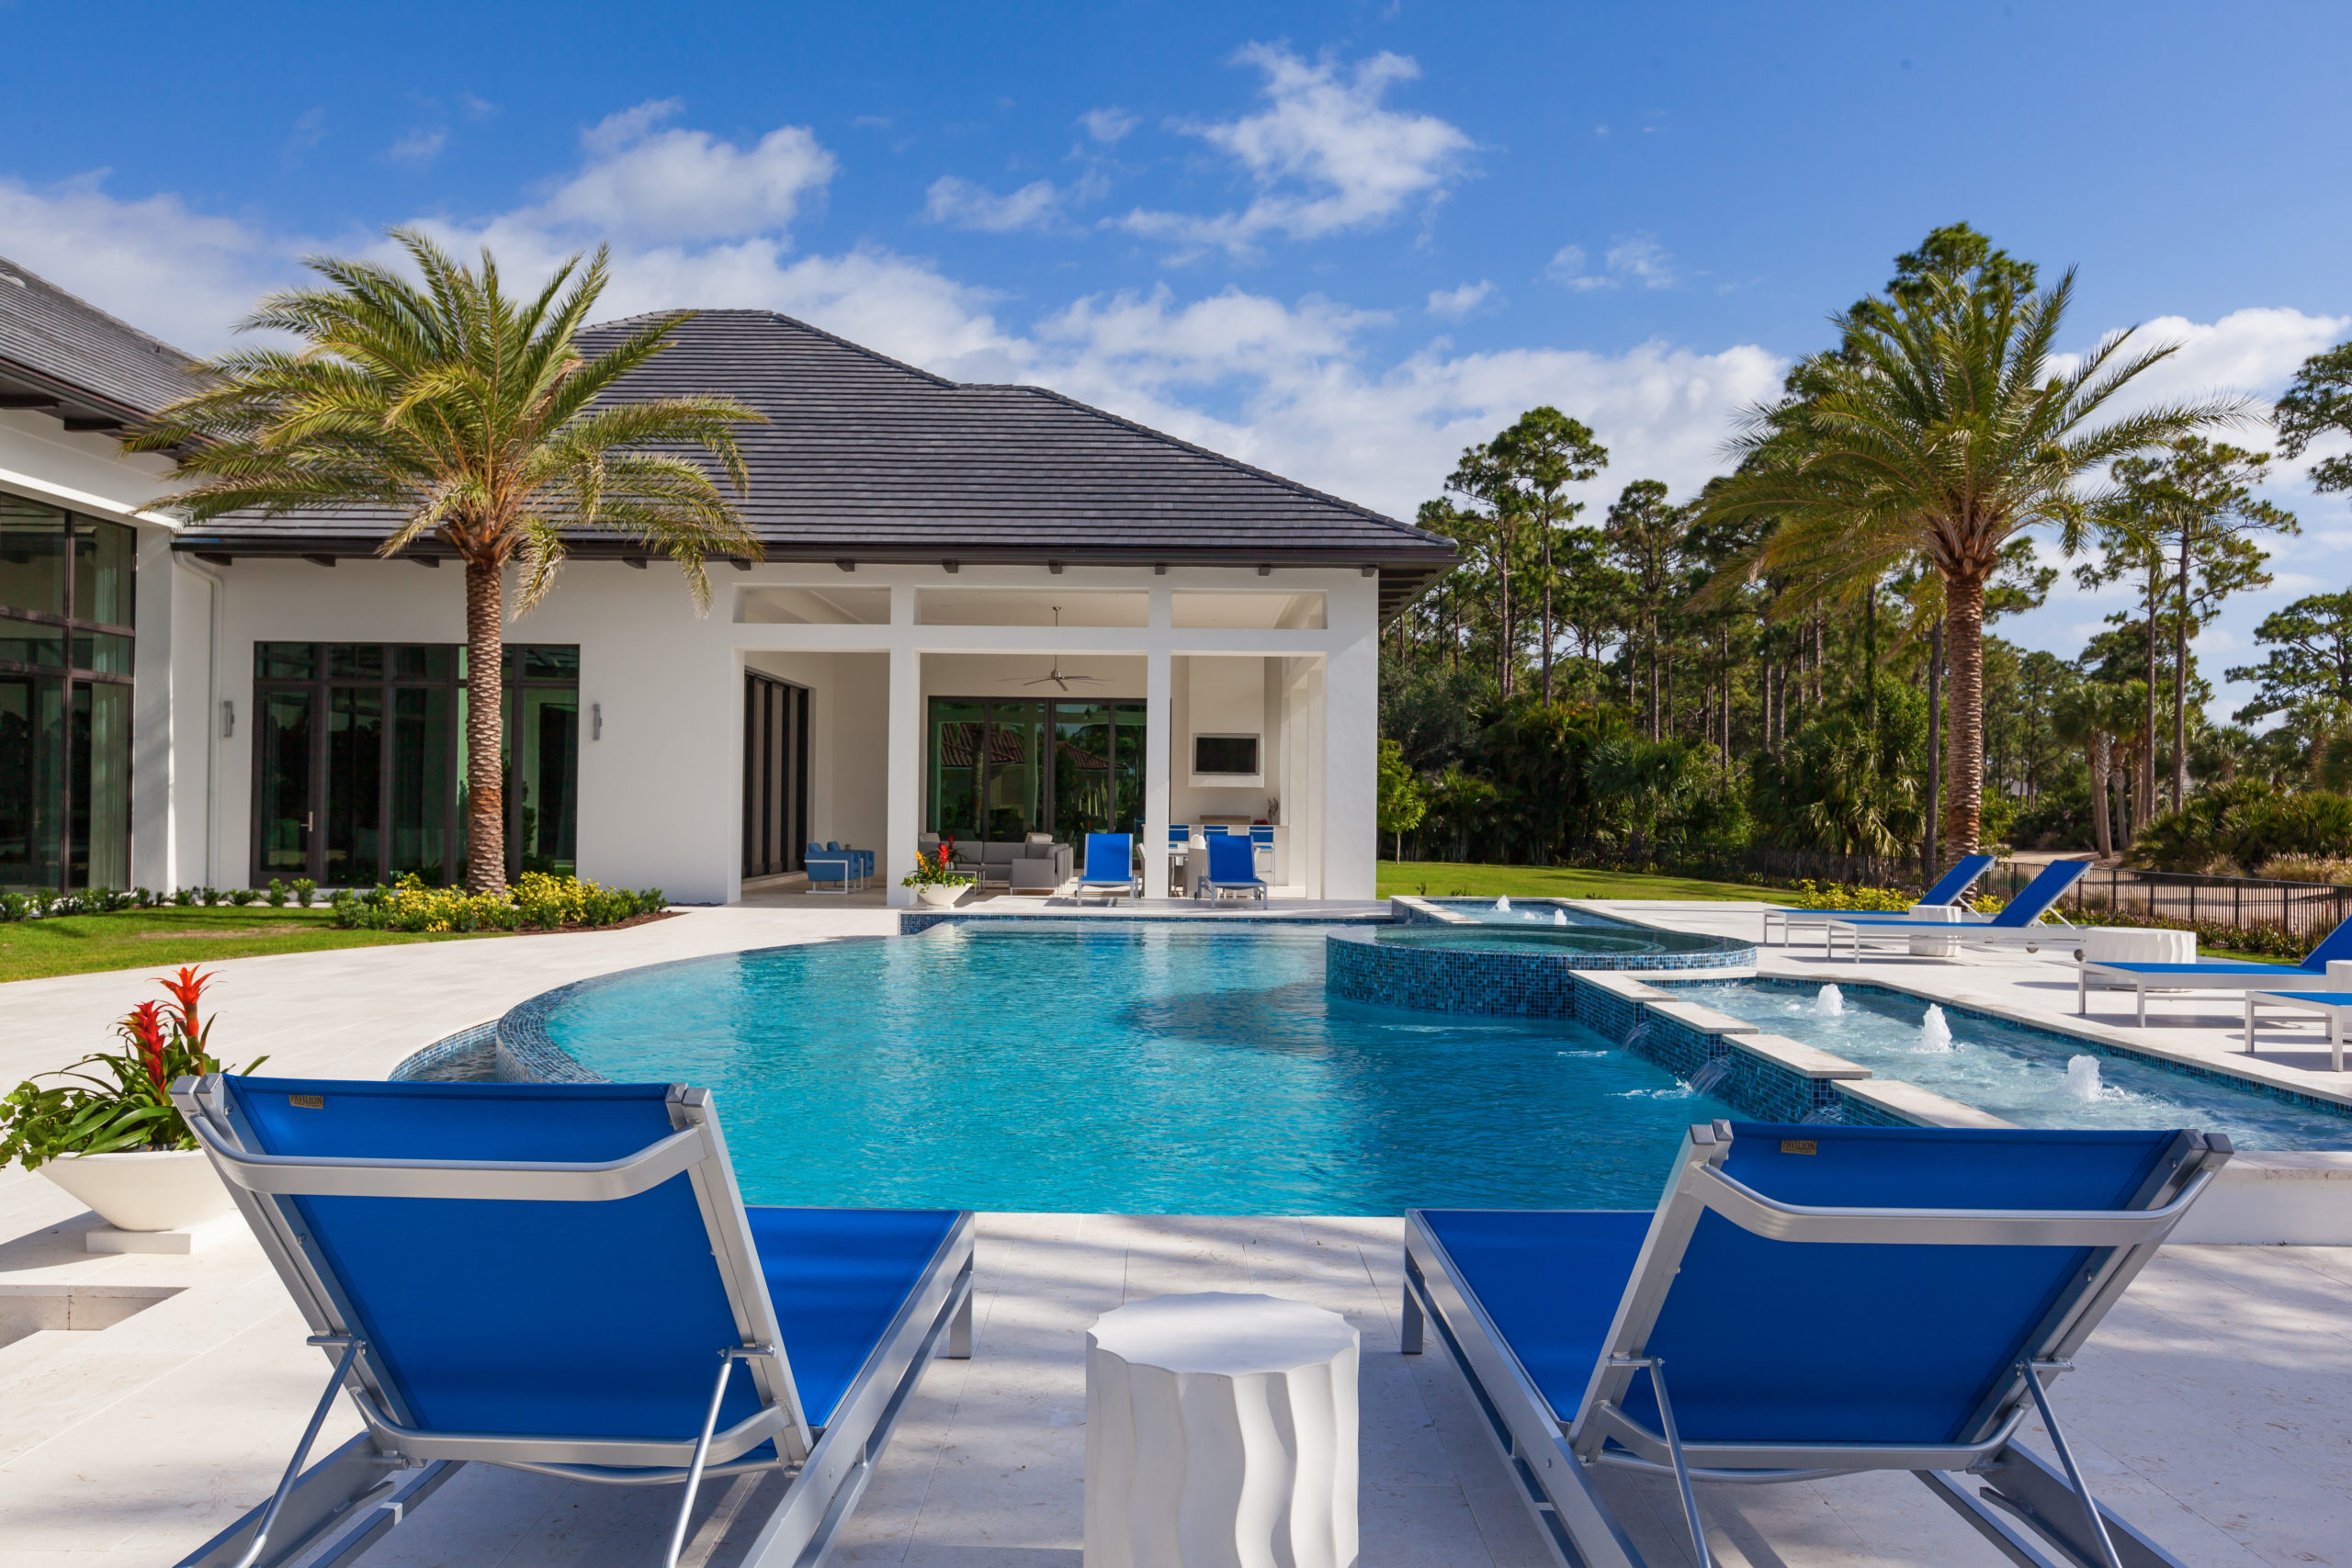 rhr pools of jupiter fl infinity edge pool with spa and water features